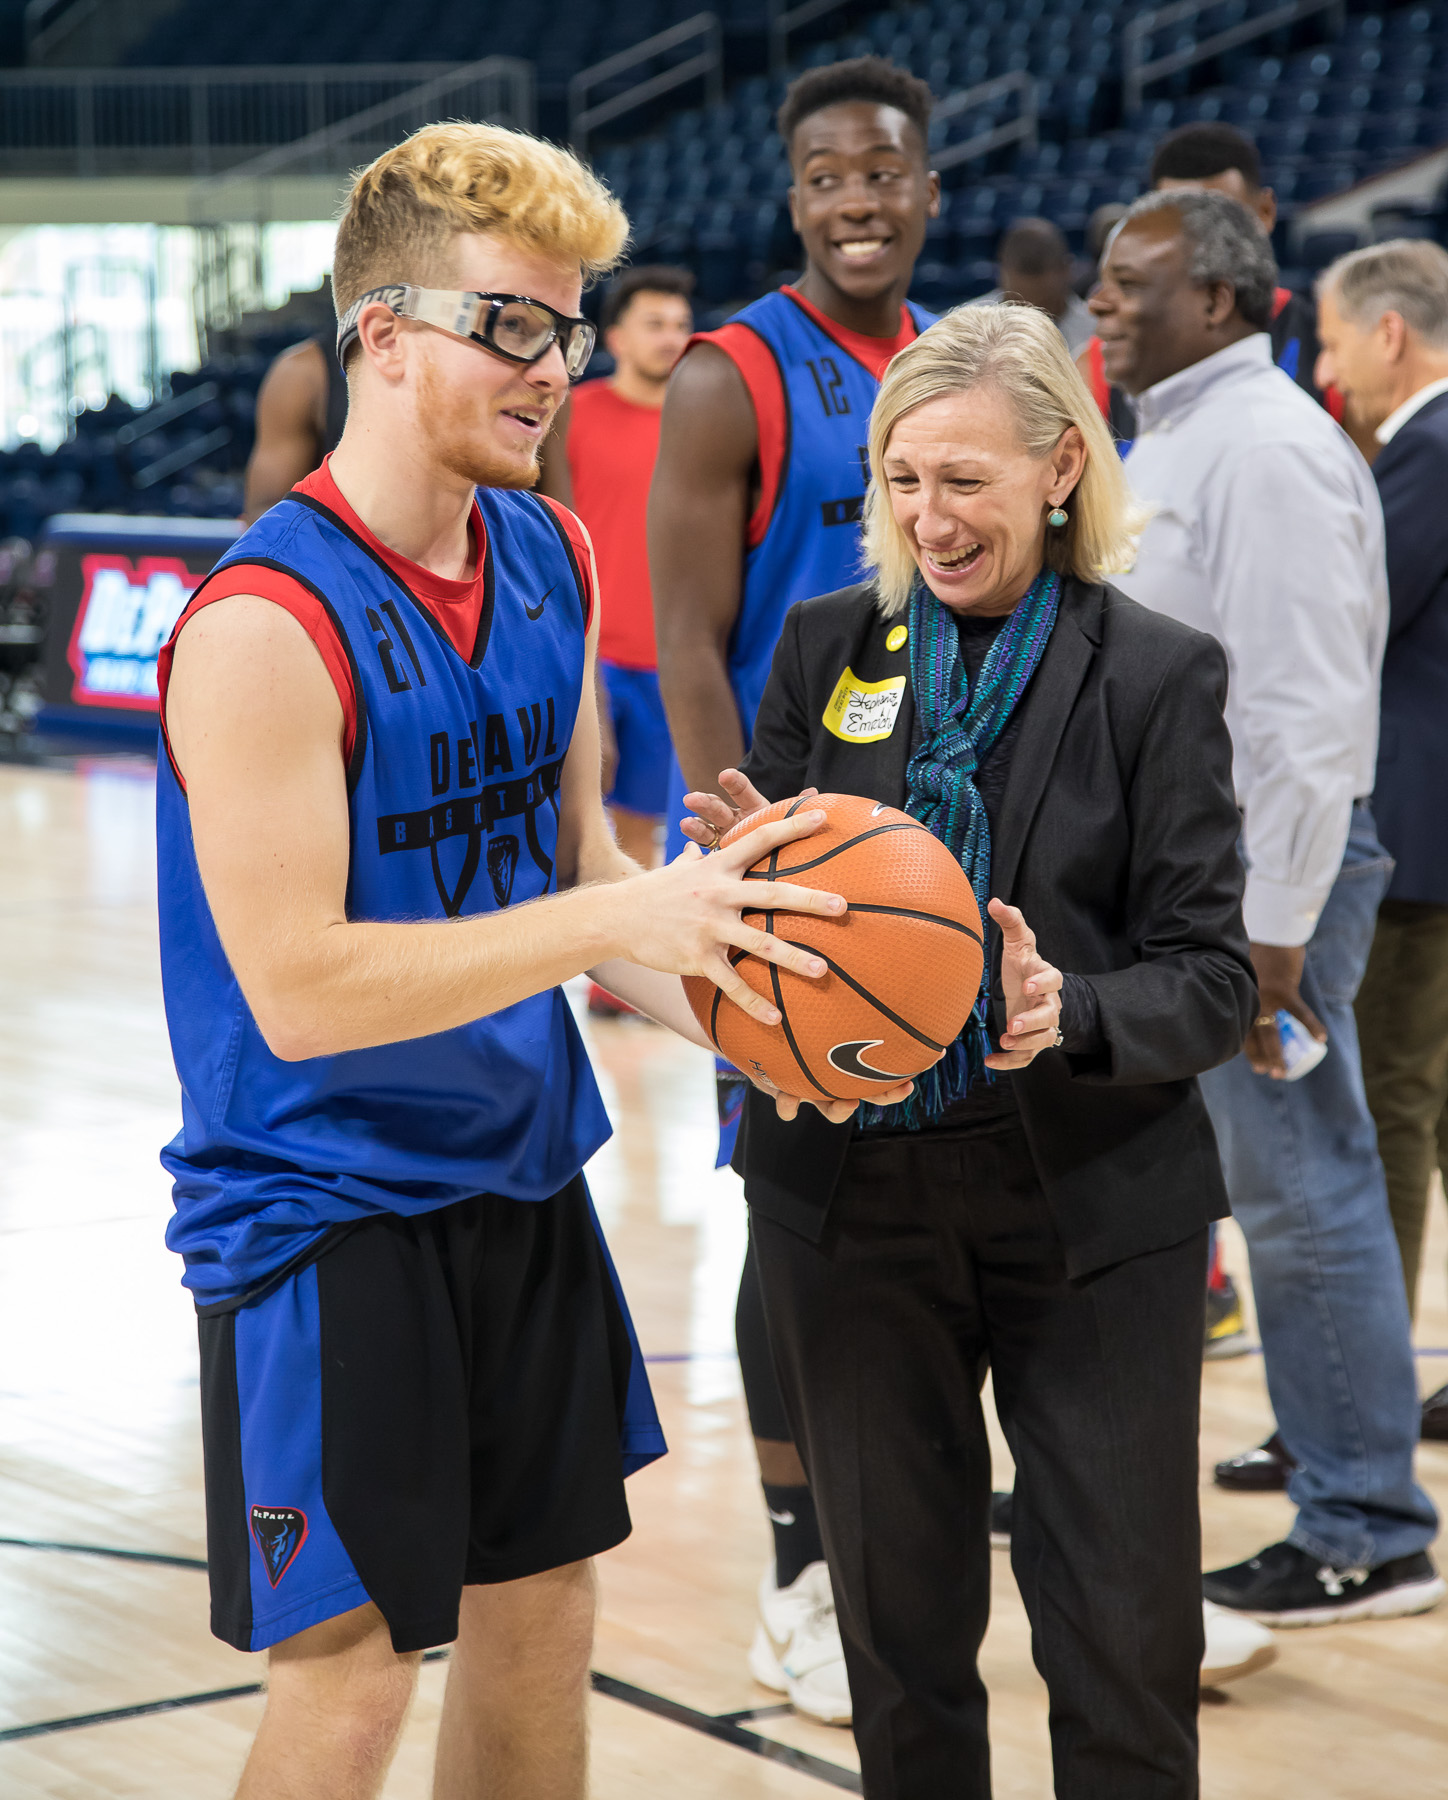 DePaul basketball player Pantelis Xidias, left, helps attendee Stephanie Emrich shoot baskets during a sneak peek of the new Wintrust Arena. (DePaul University/Jeff Carrion)